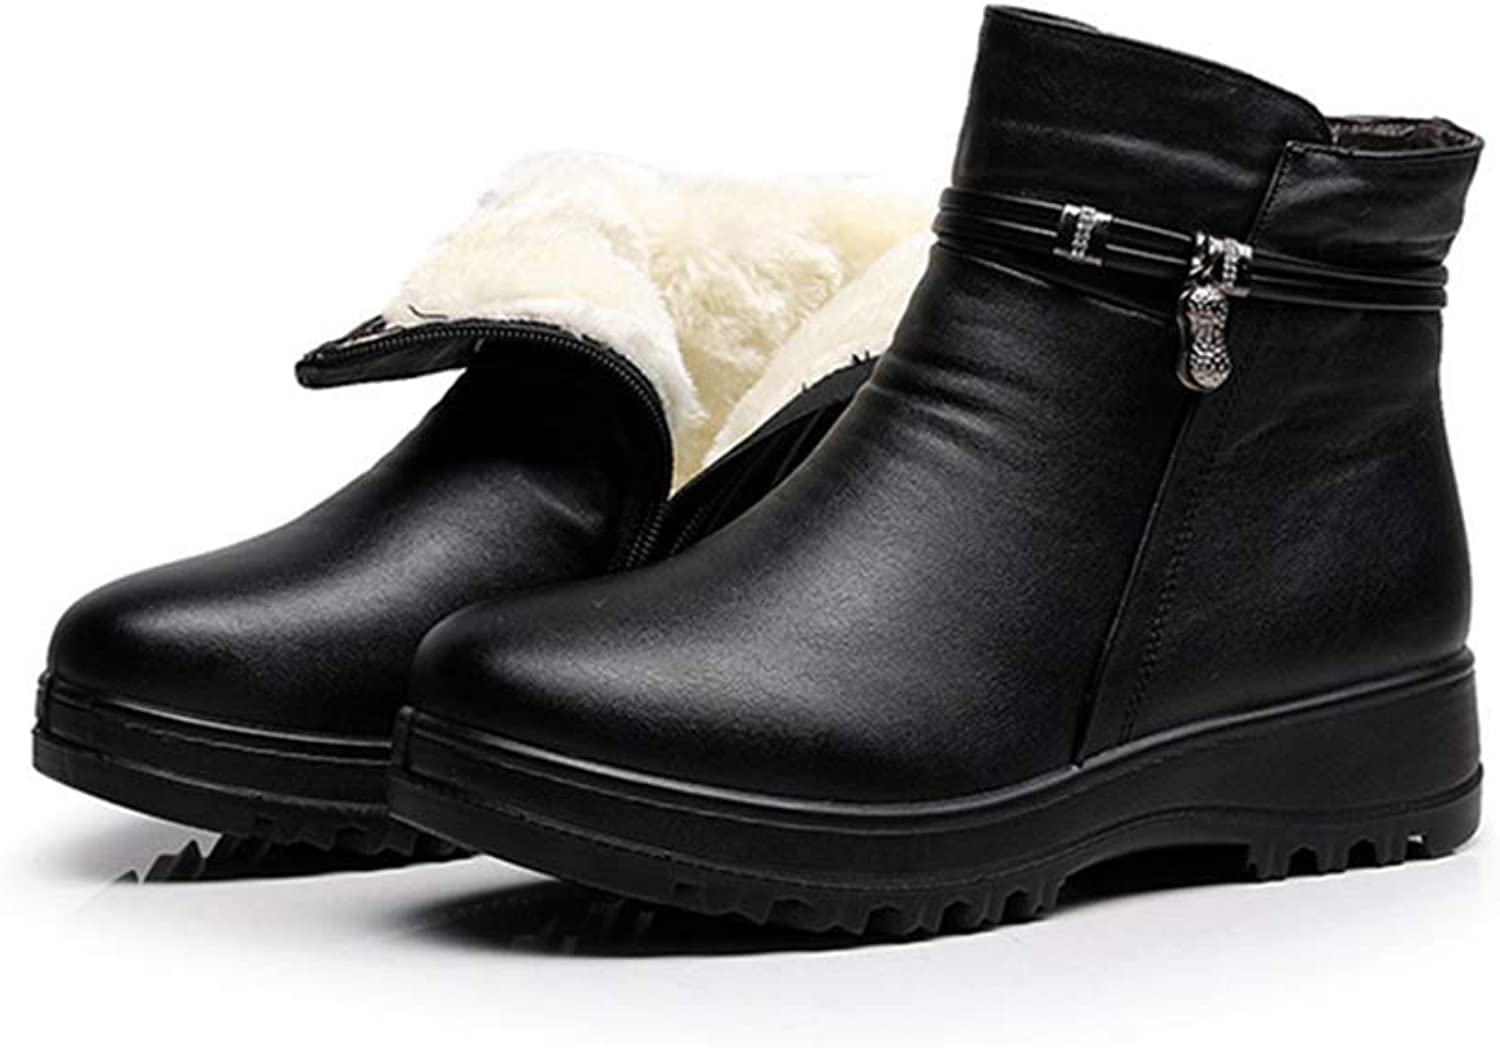 Fashion Winter Women's Warm Ankle Snow Boots Genuine Leather Flat Casual Comfortable shoes Black 7 M US